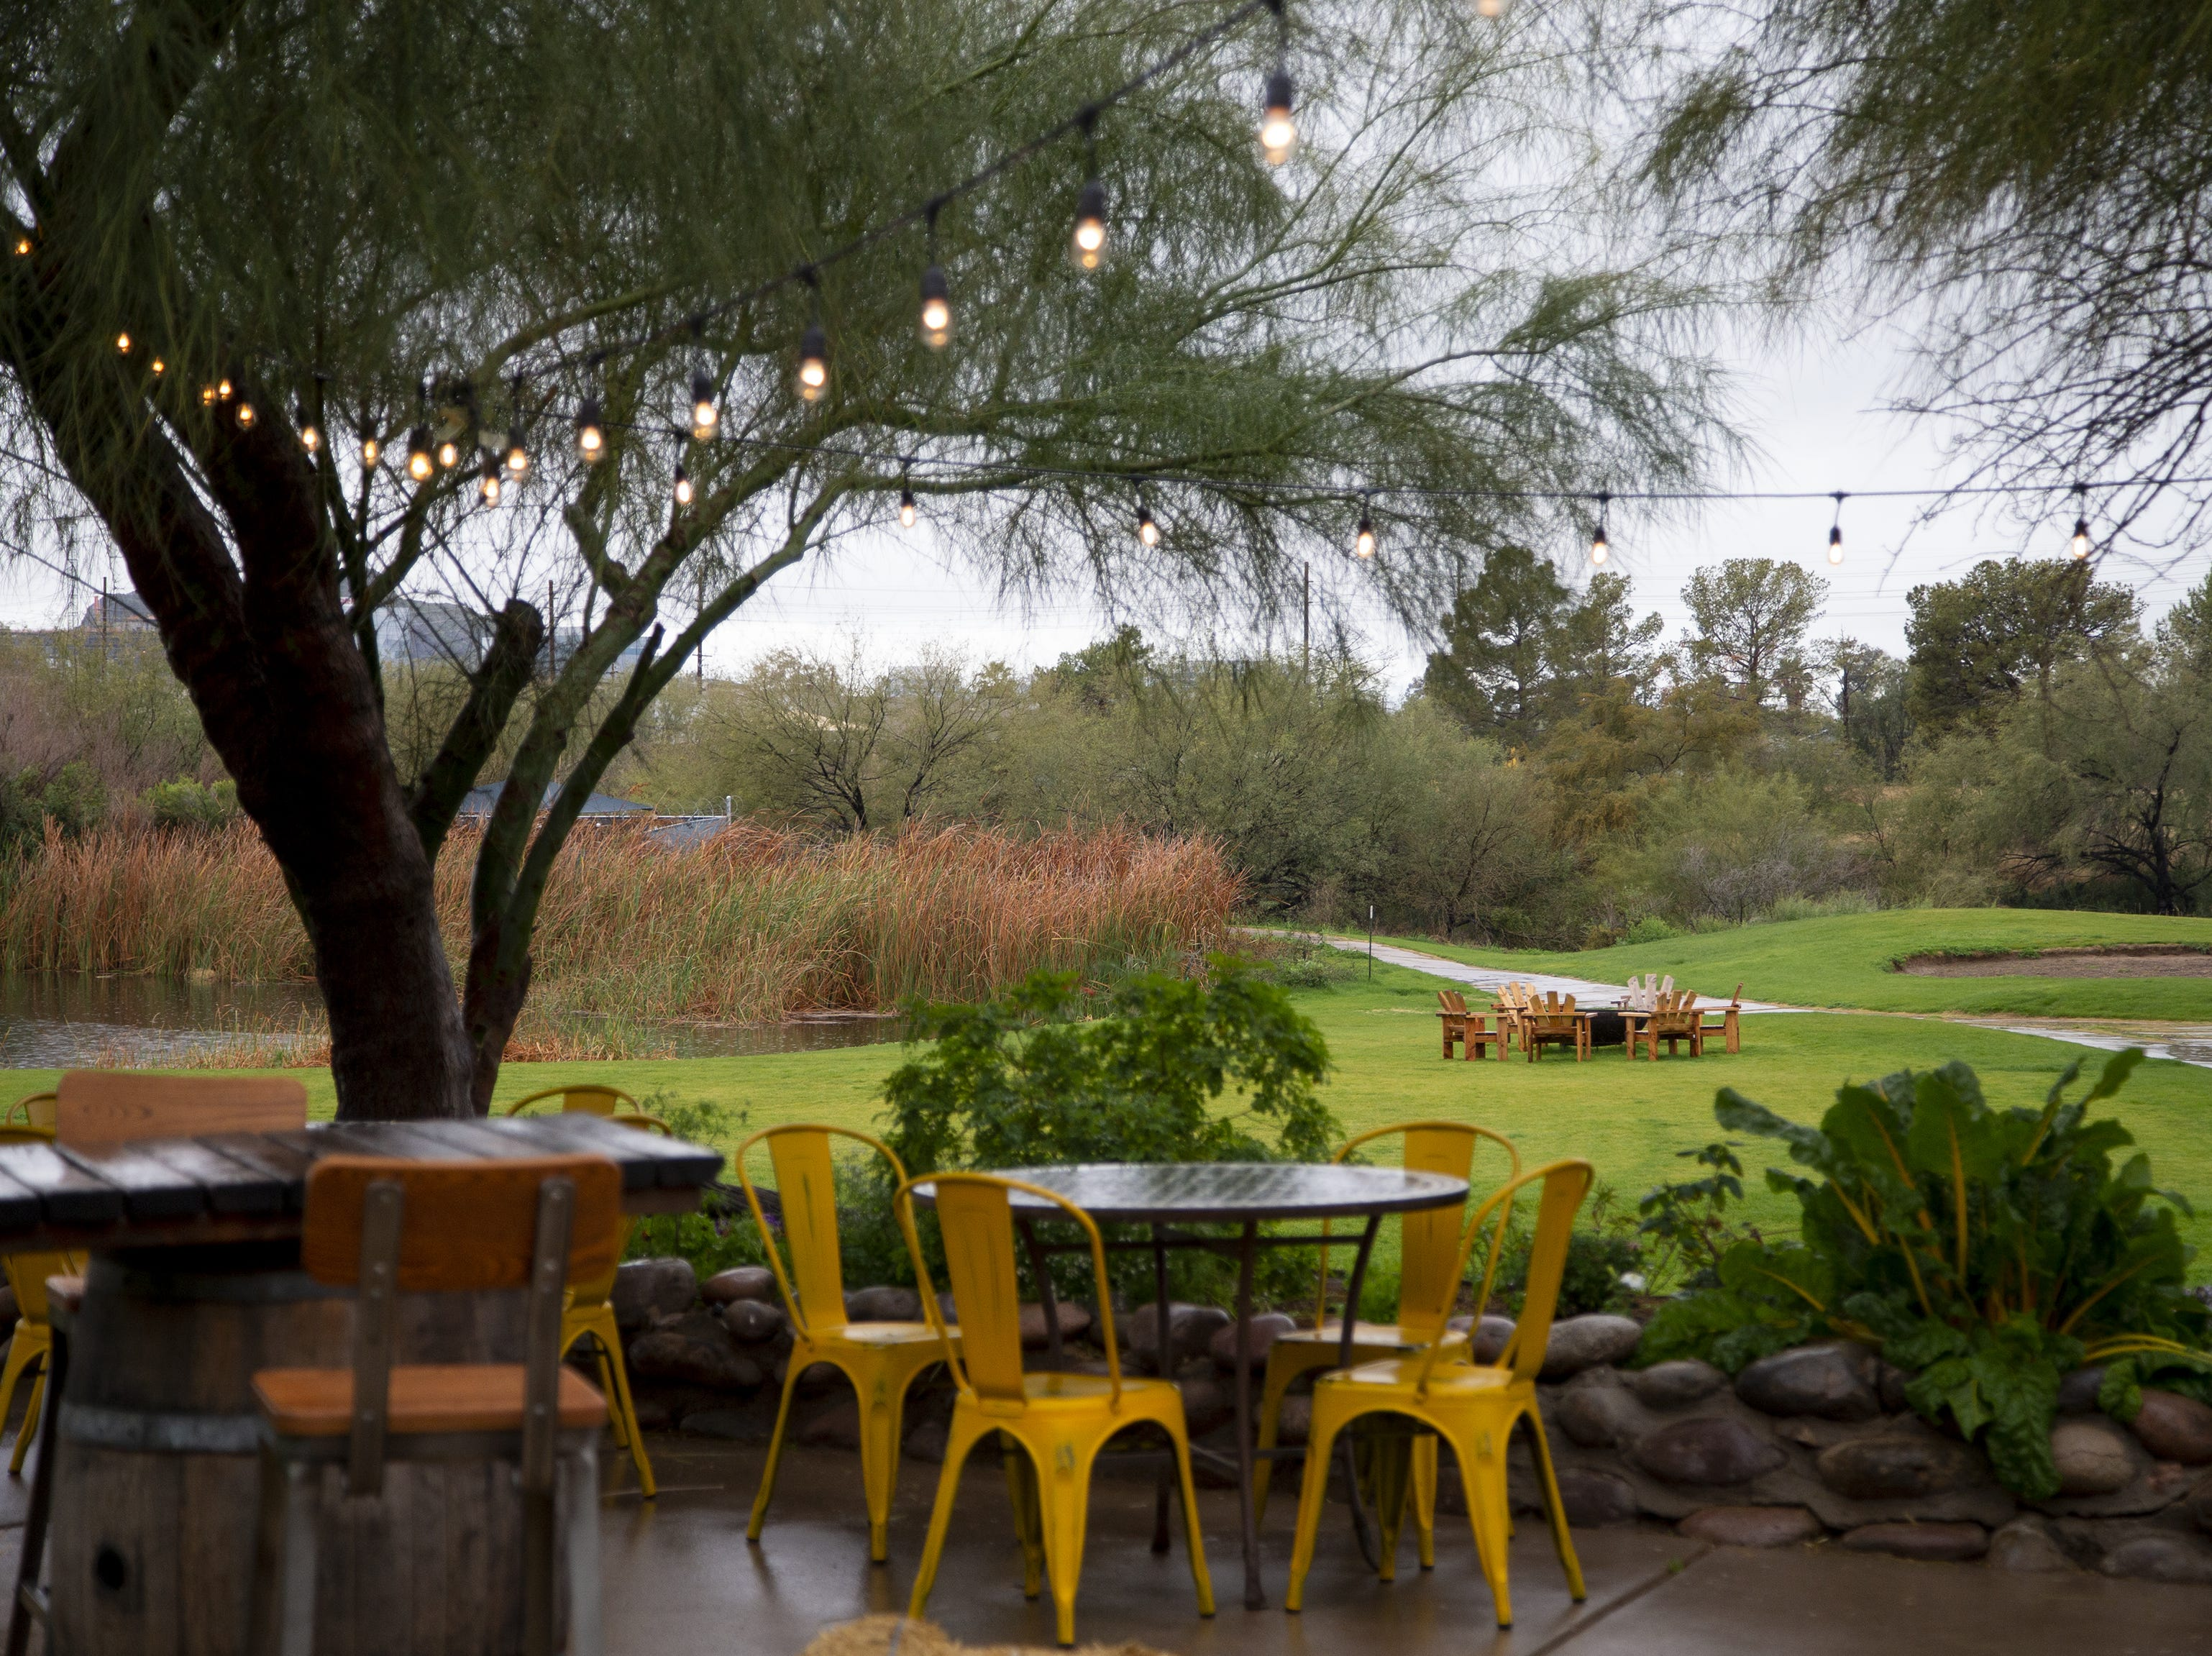 Singh Meadows patio in Tempe.